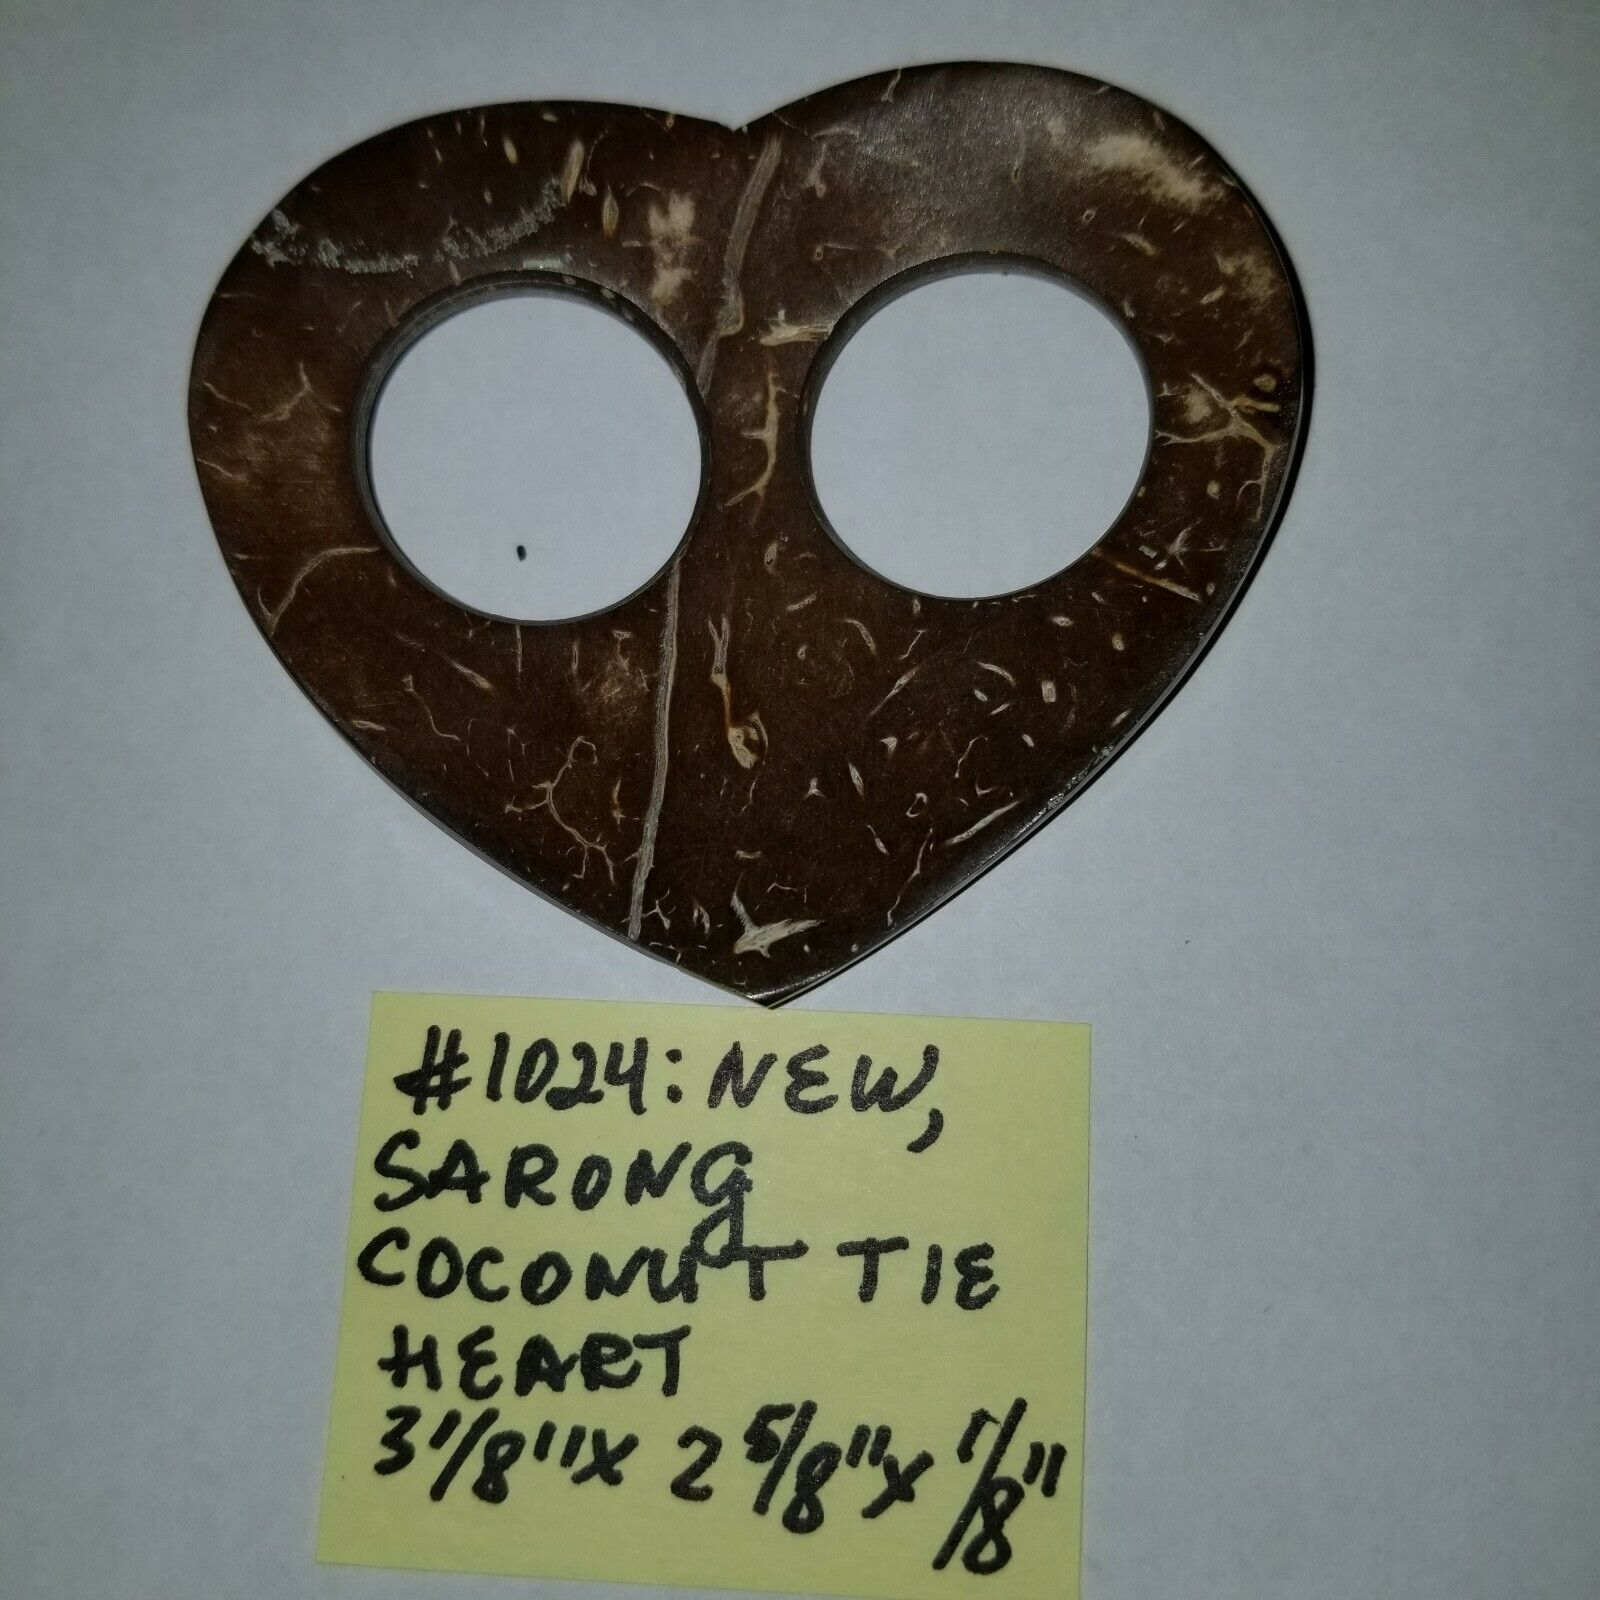 #1024 NWOT RARE Coconut Handcarved Sarong Tie Heart One of a Kind OBO